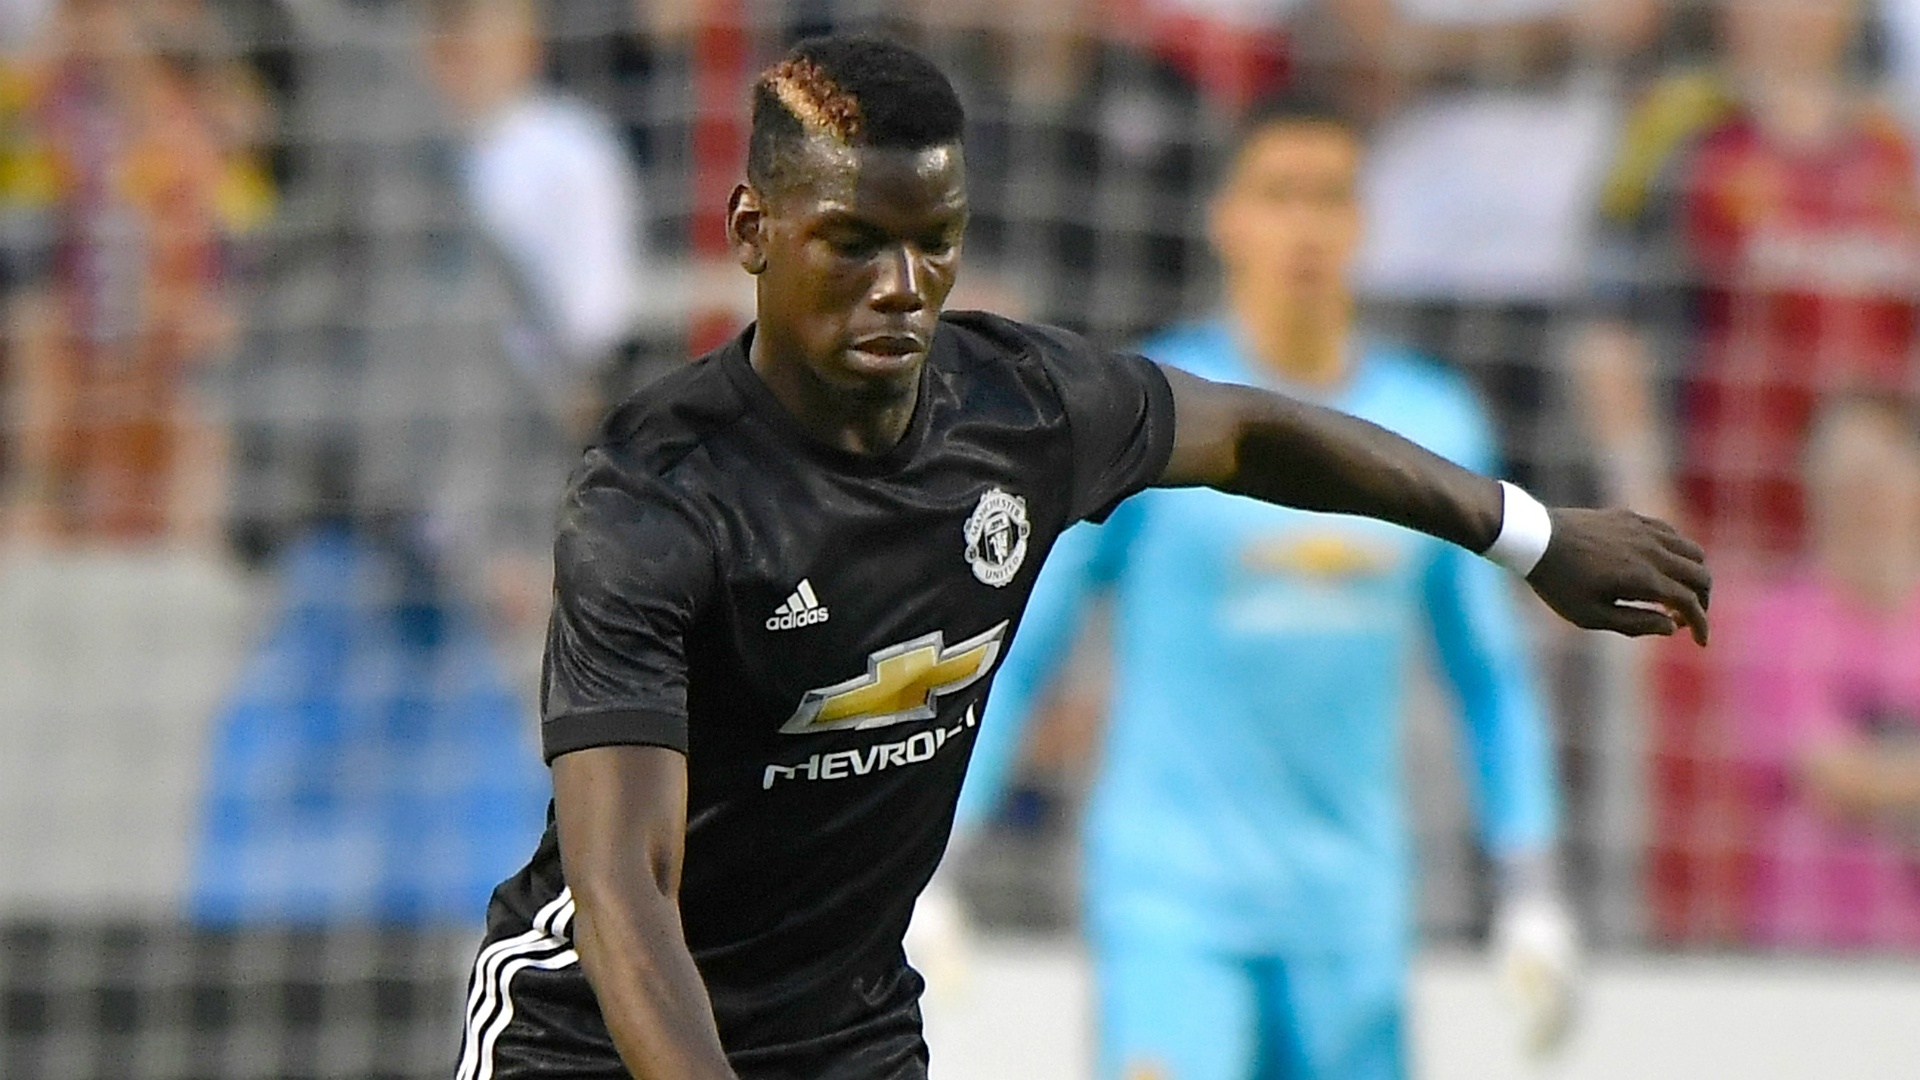 However, neither the result nor the manner of play are worrying Jose Mourinho. Talking to MUTV after the game in Landover, Maryland, the manager spoke about the importance for the team to add such experiences.